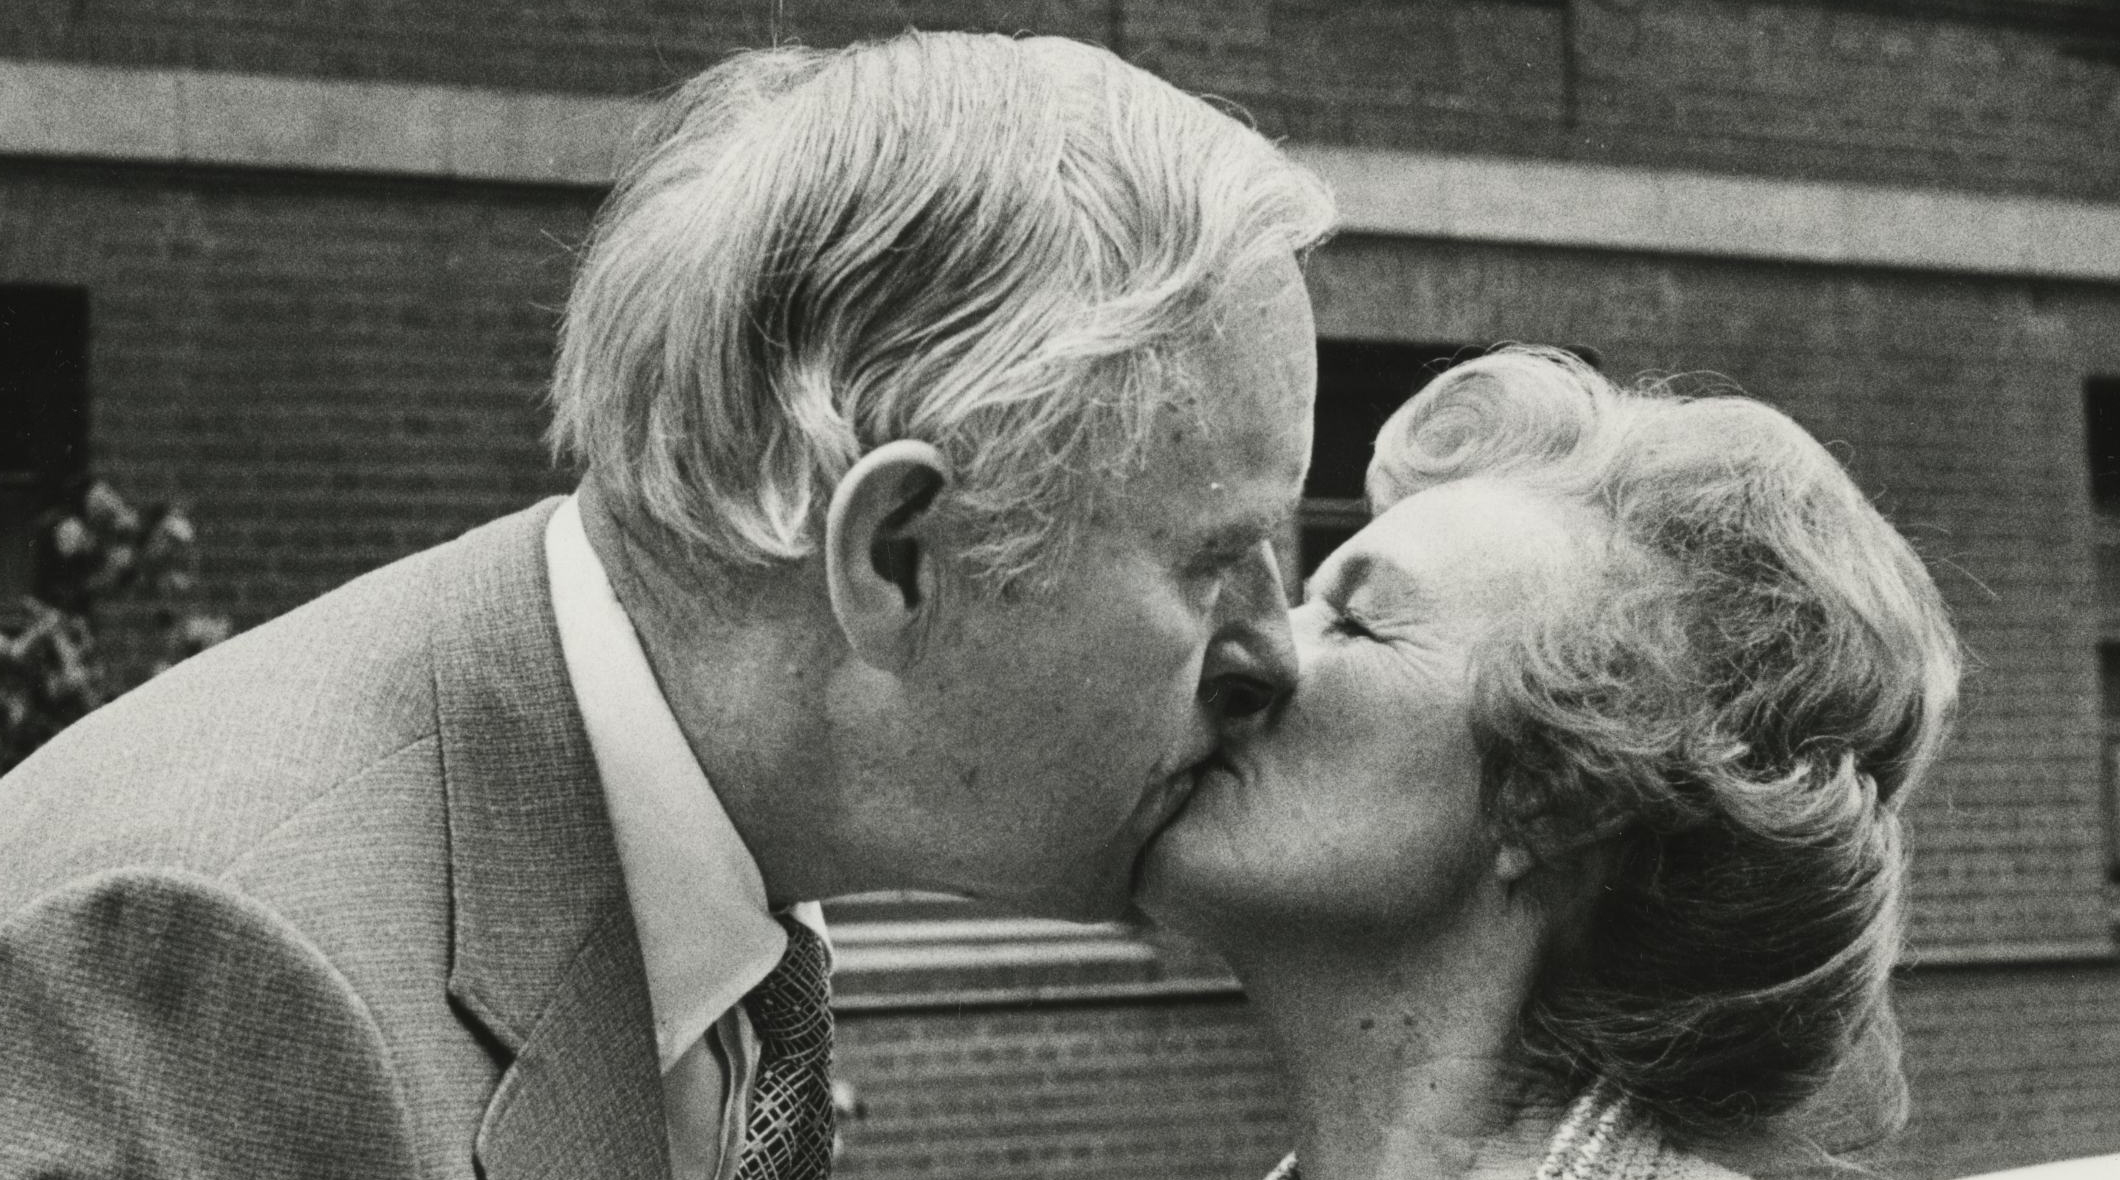 Tom and Audrey McCall, 1981, following Tom's hospital stay